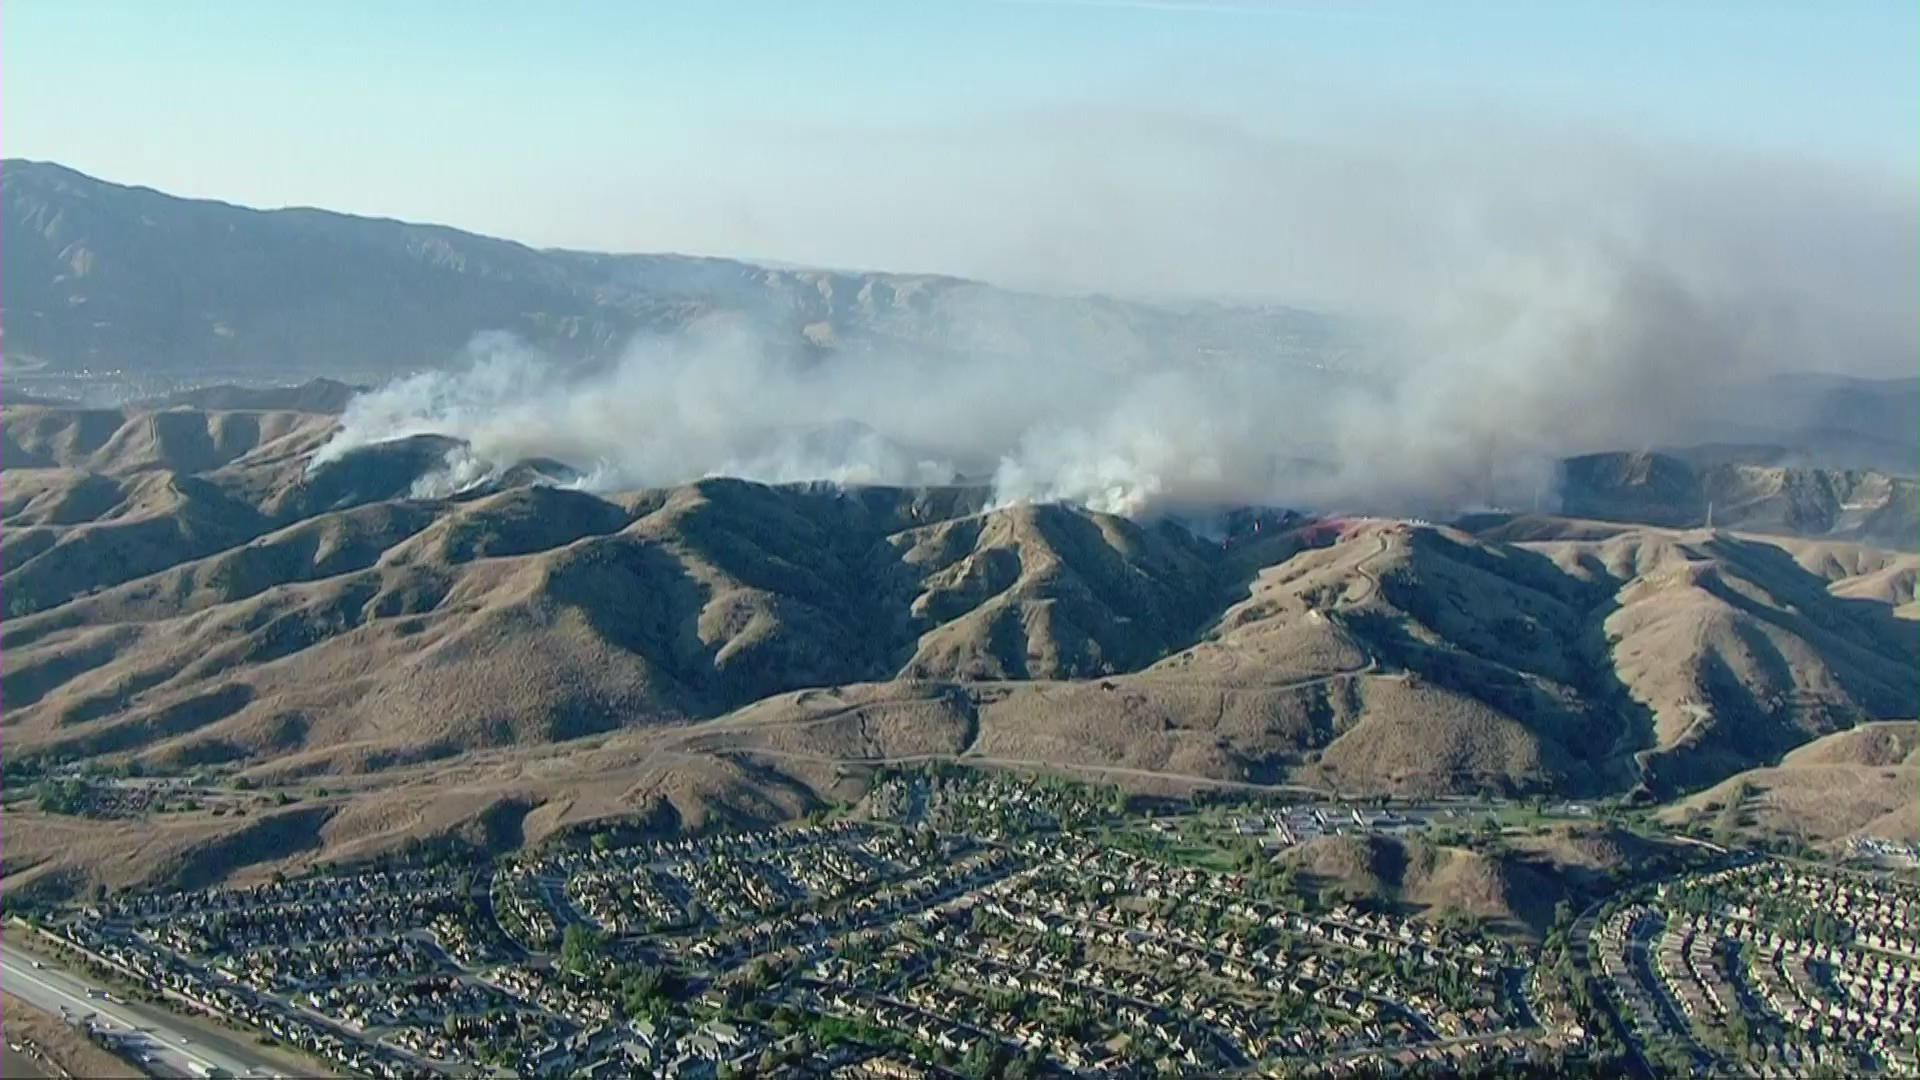 Smoke rises from the Blue Ridge Fire in the Yorba Linda and Chino Hills area on Oct. 27, 2020. (Sky5)